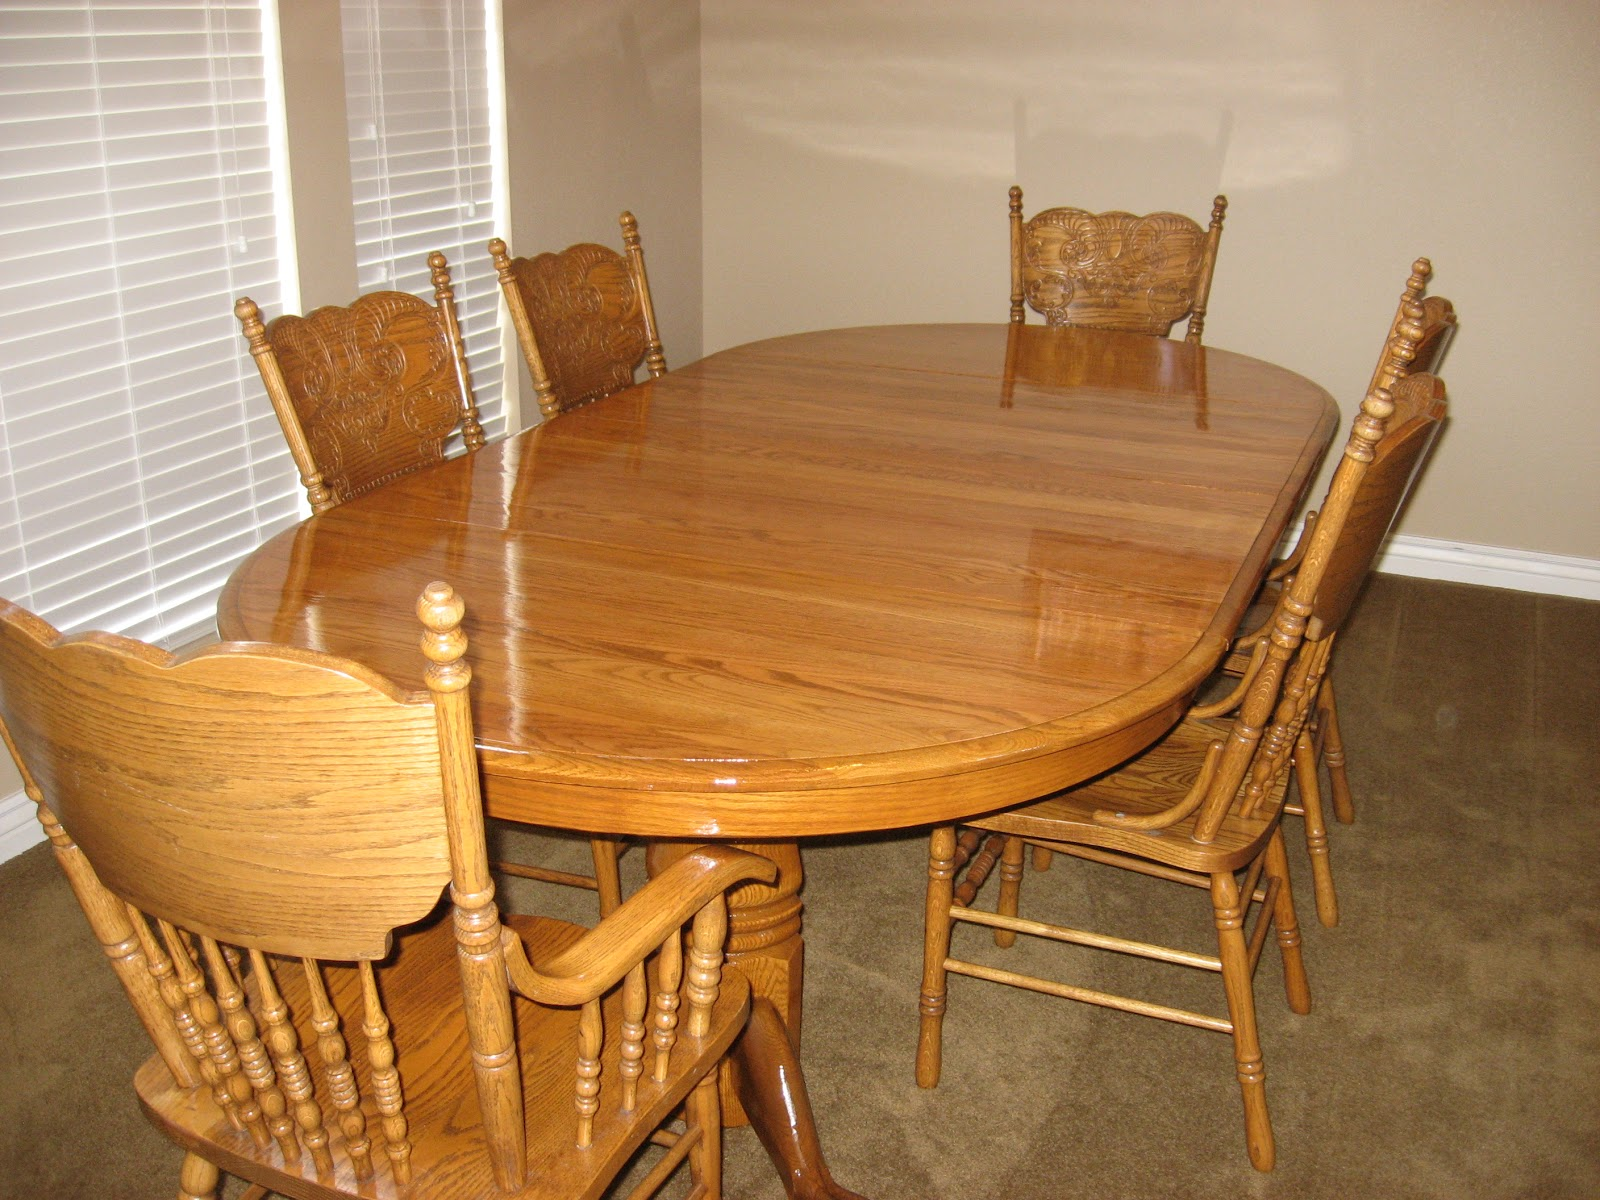 Solid Oak Table And Chairs Refinished With Early American. Full resolution‎  portraiture, nominally Width 1600 Height 1200 pixels, portraiture with #C37708.